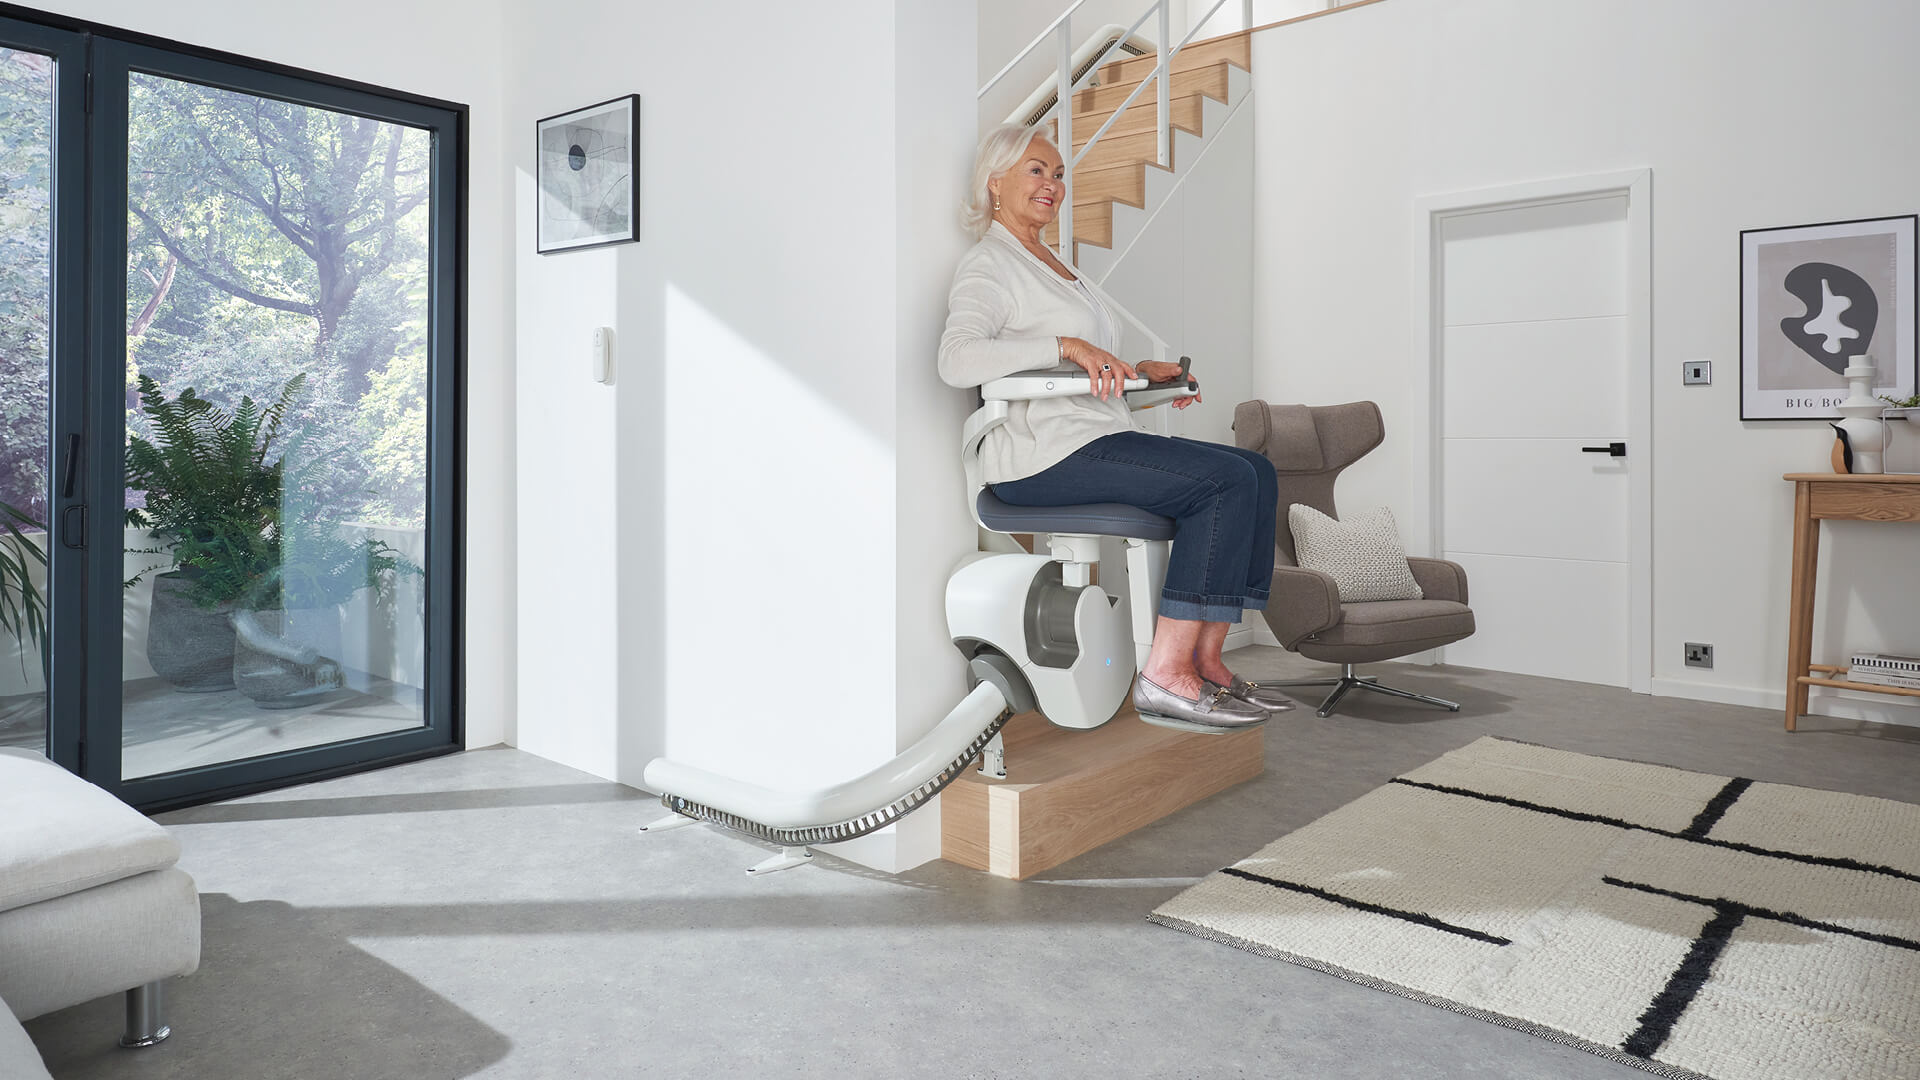 Pearson Lloyd develops Flow X as a stairlift for the 21st century